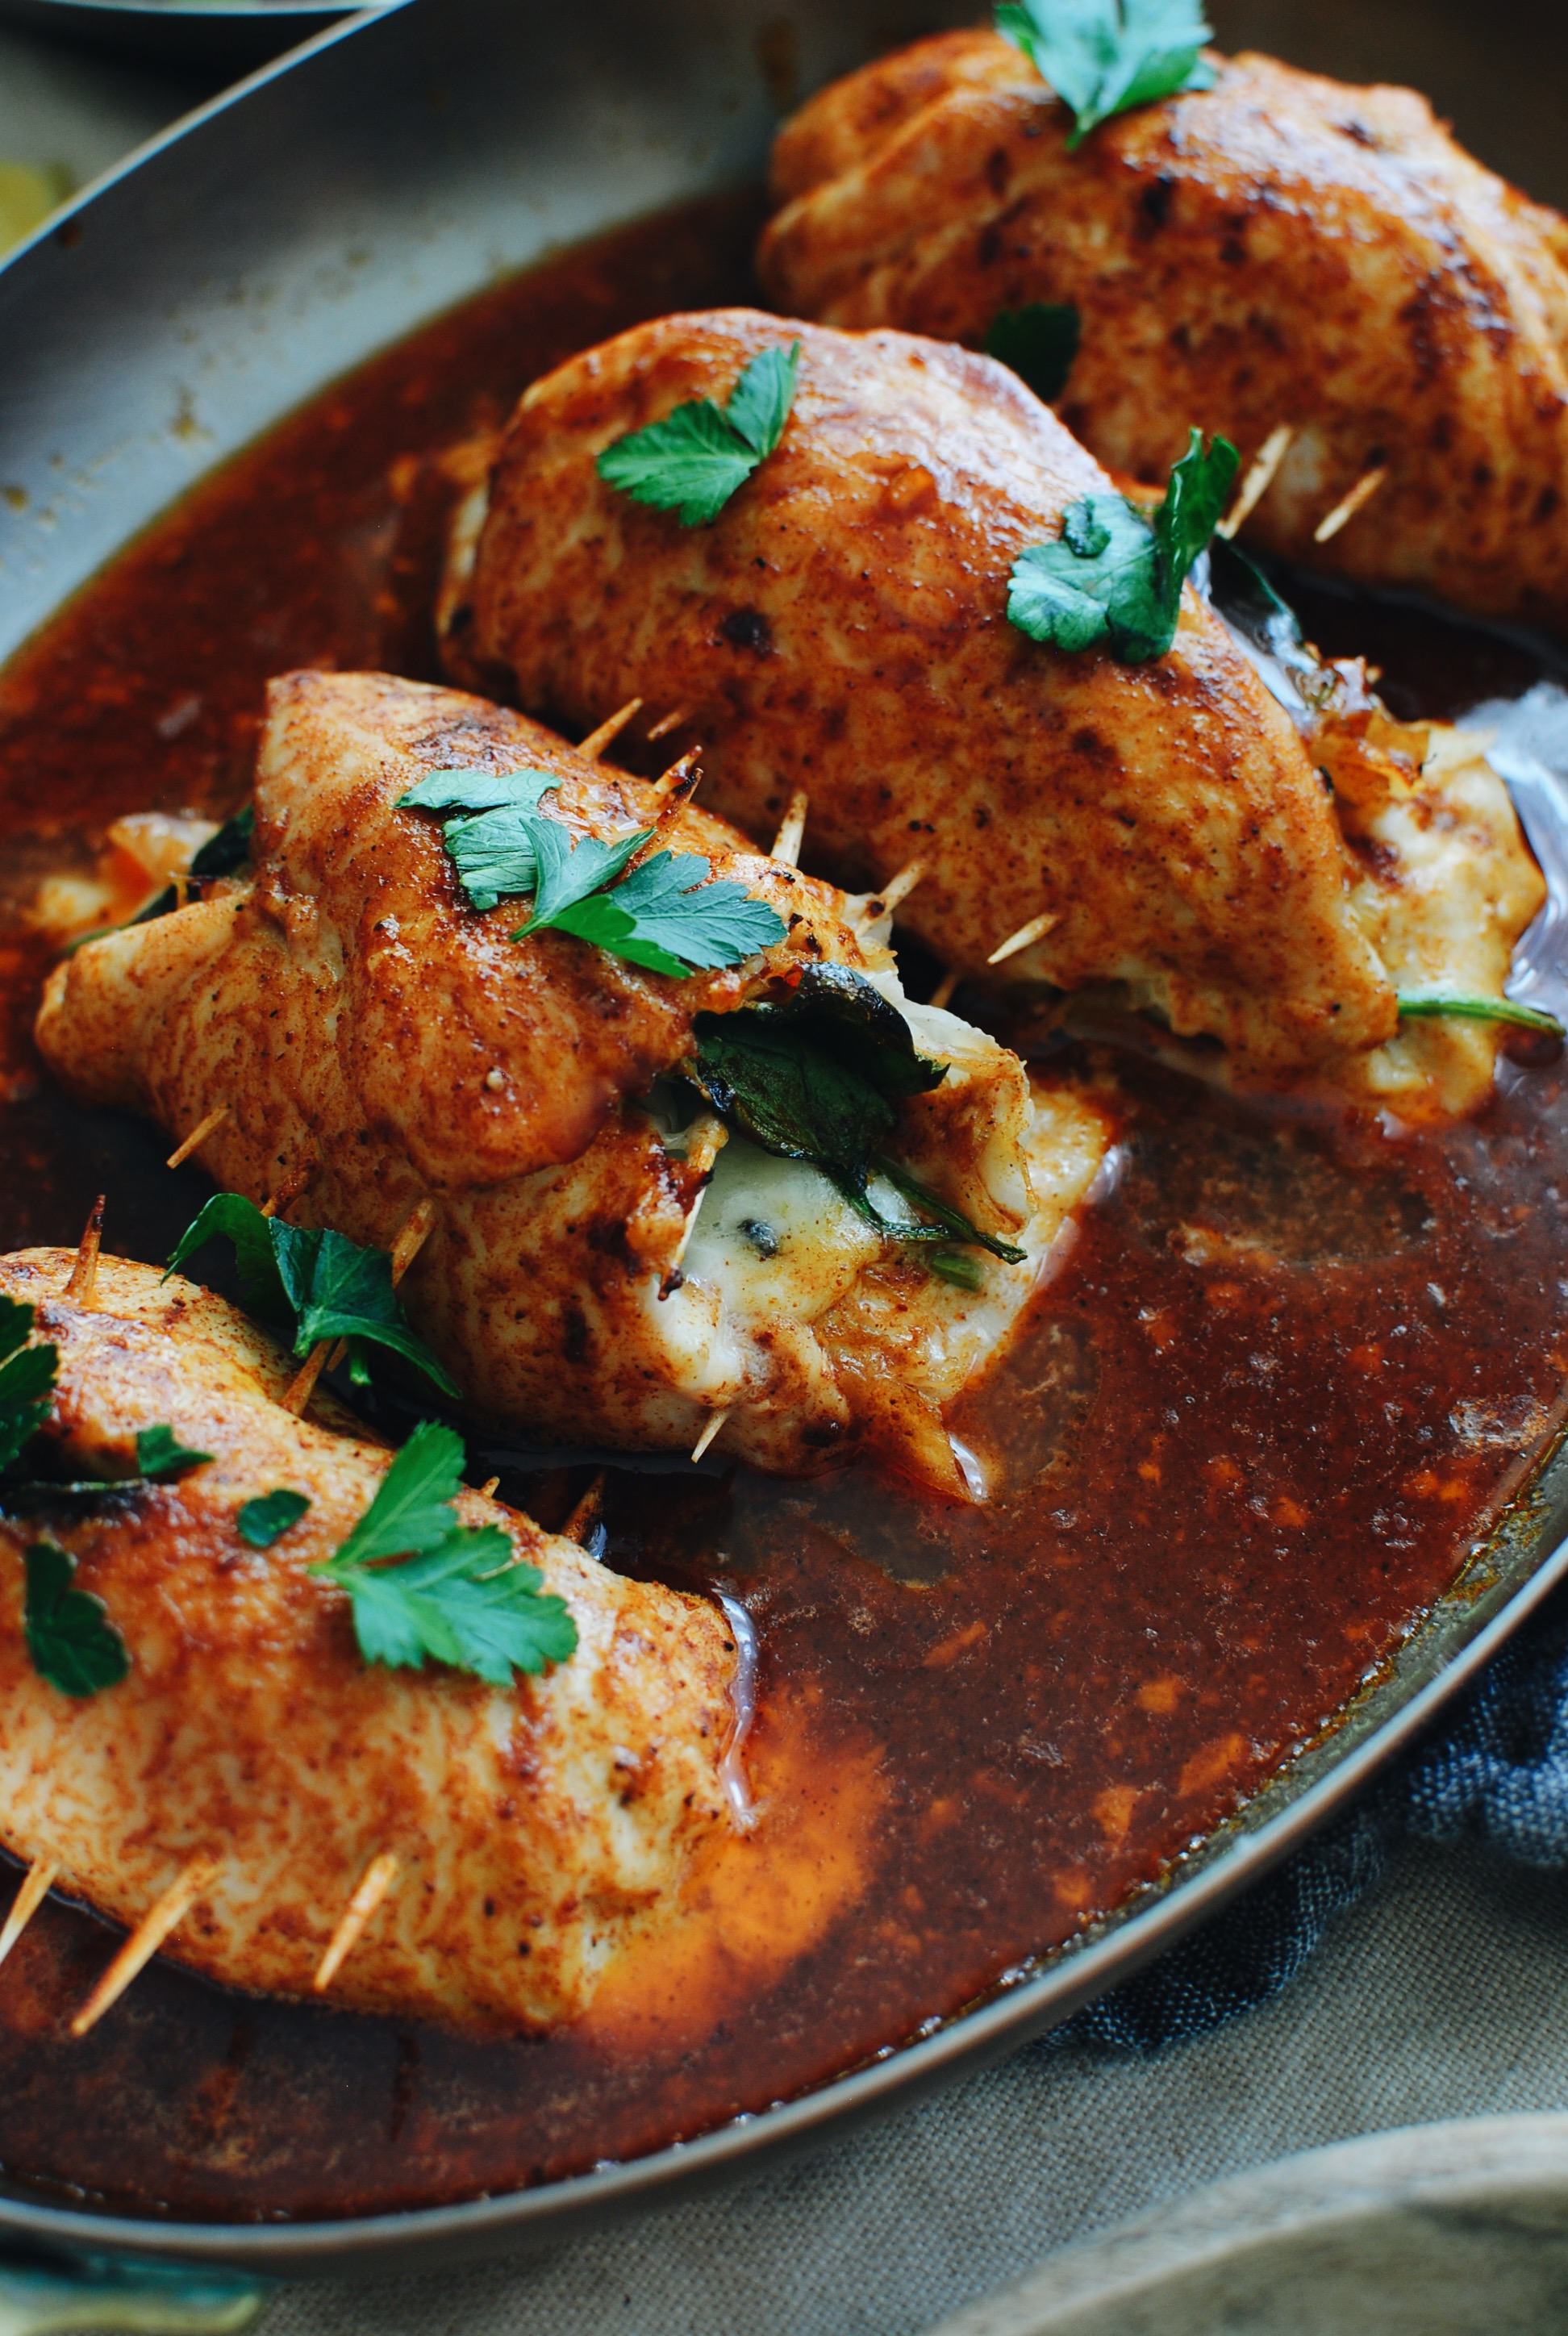 Stuffed Baked Chicken / Bev Cooks